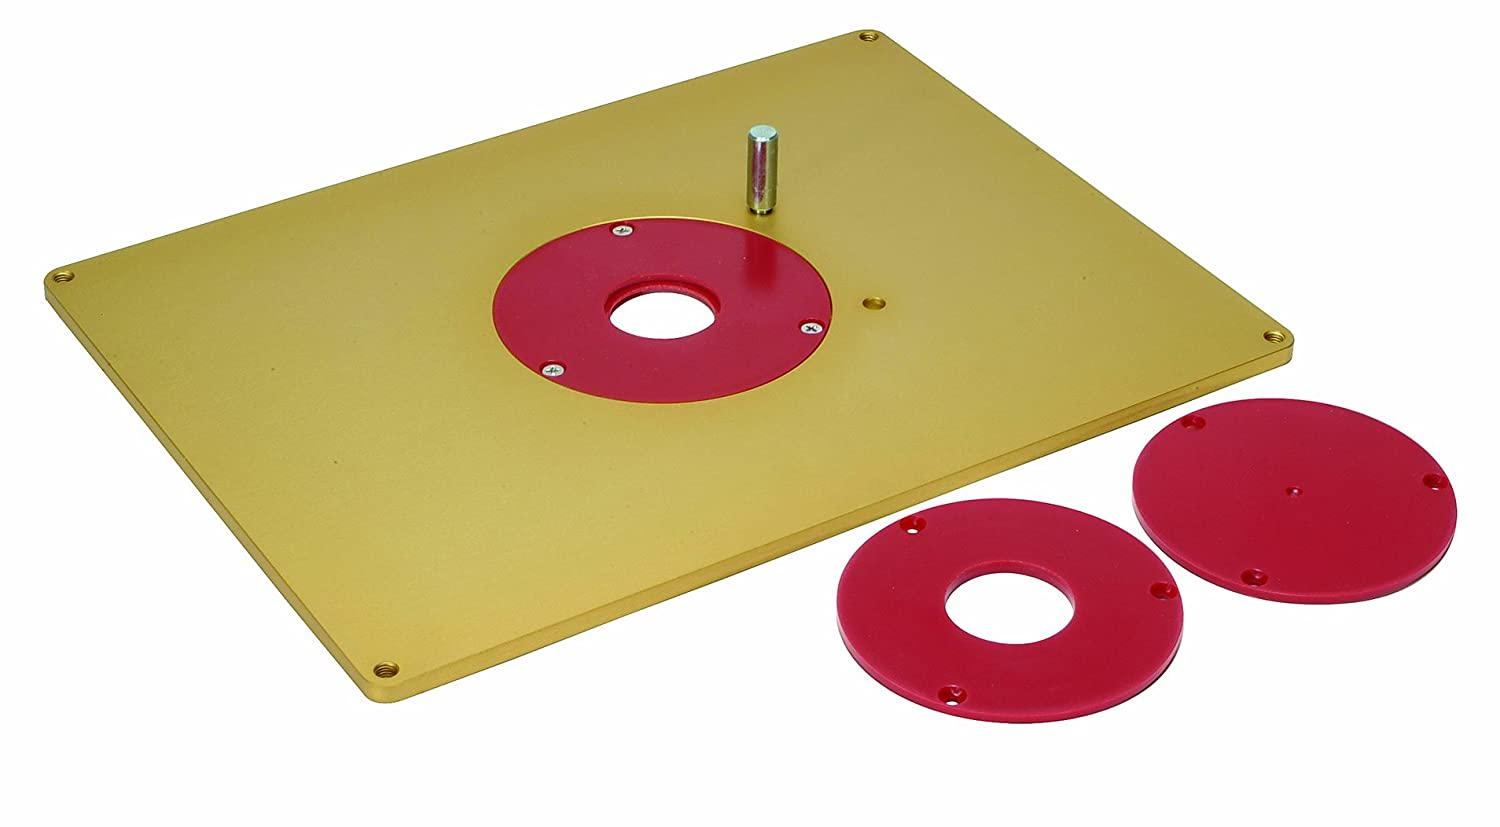 MLCS Thick Aluminum Router Plate